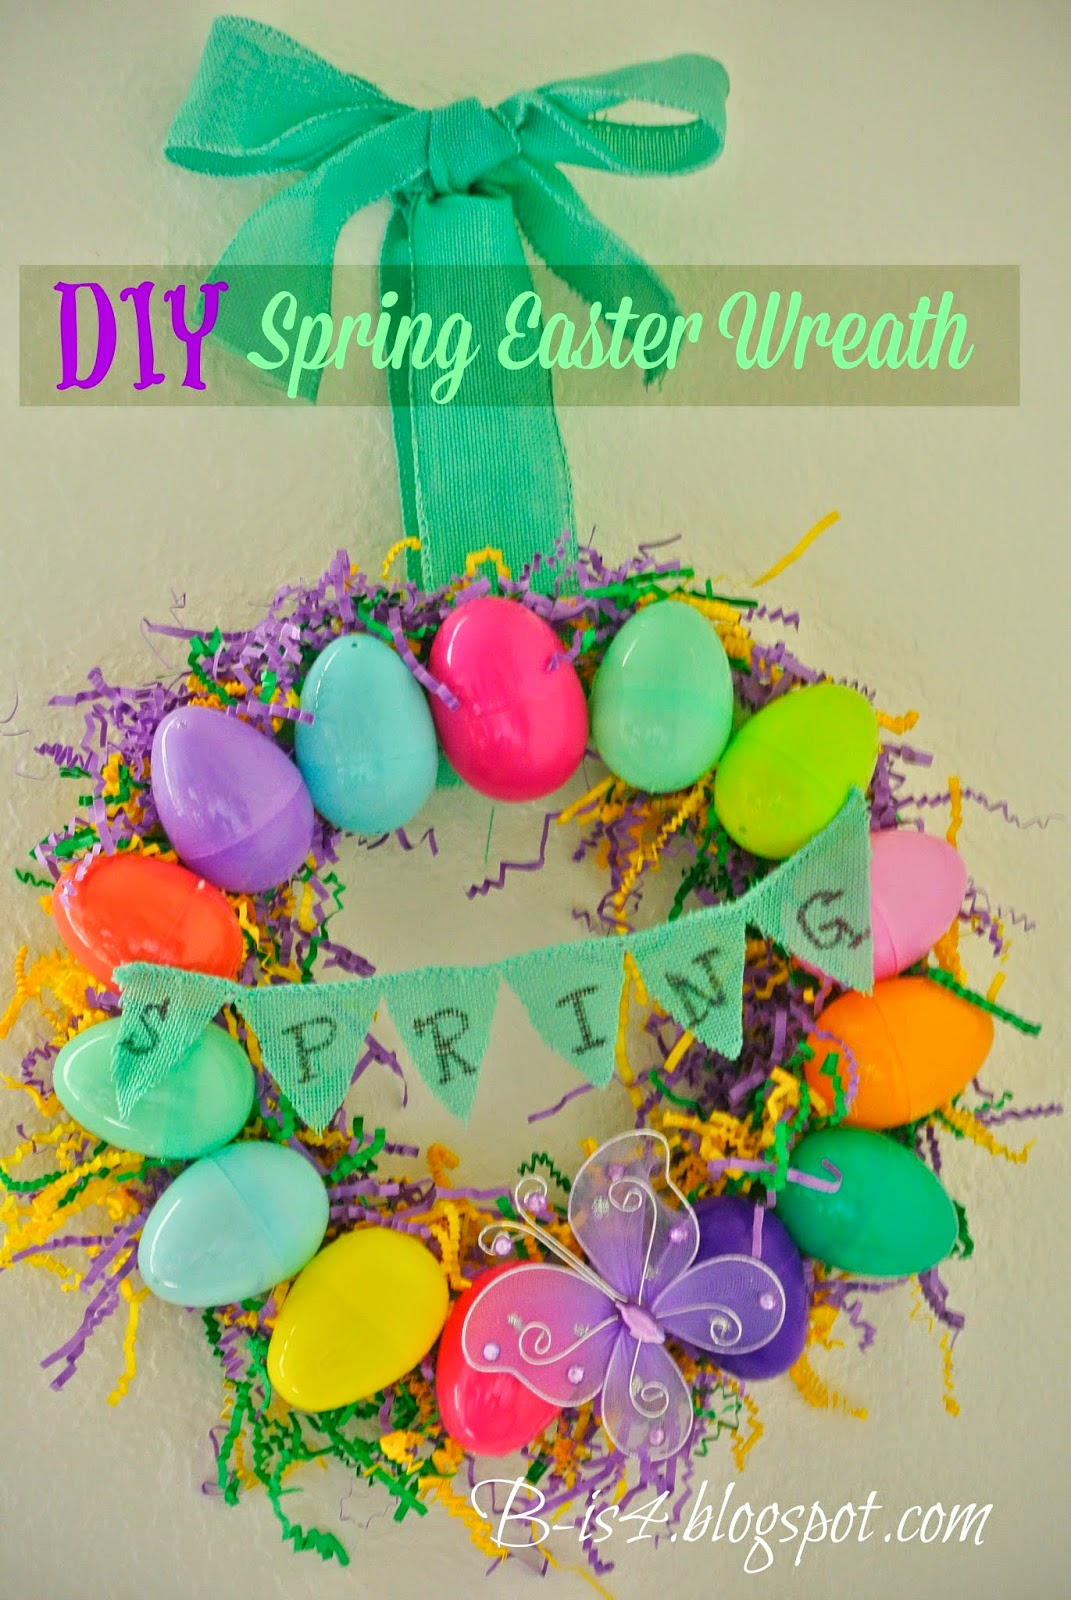 DIY Easter Egg Spring Wreath